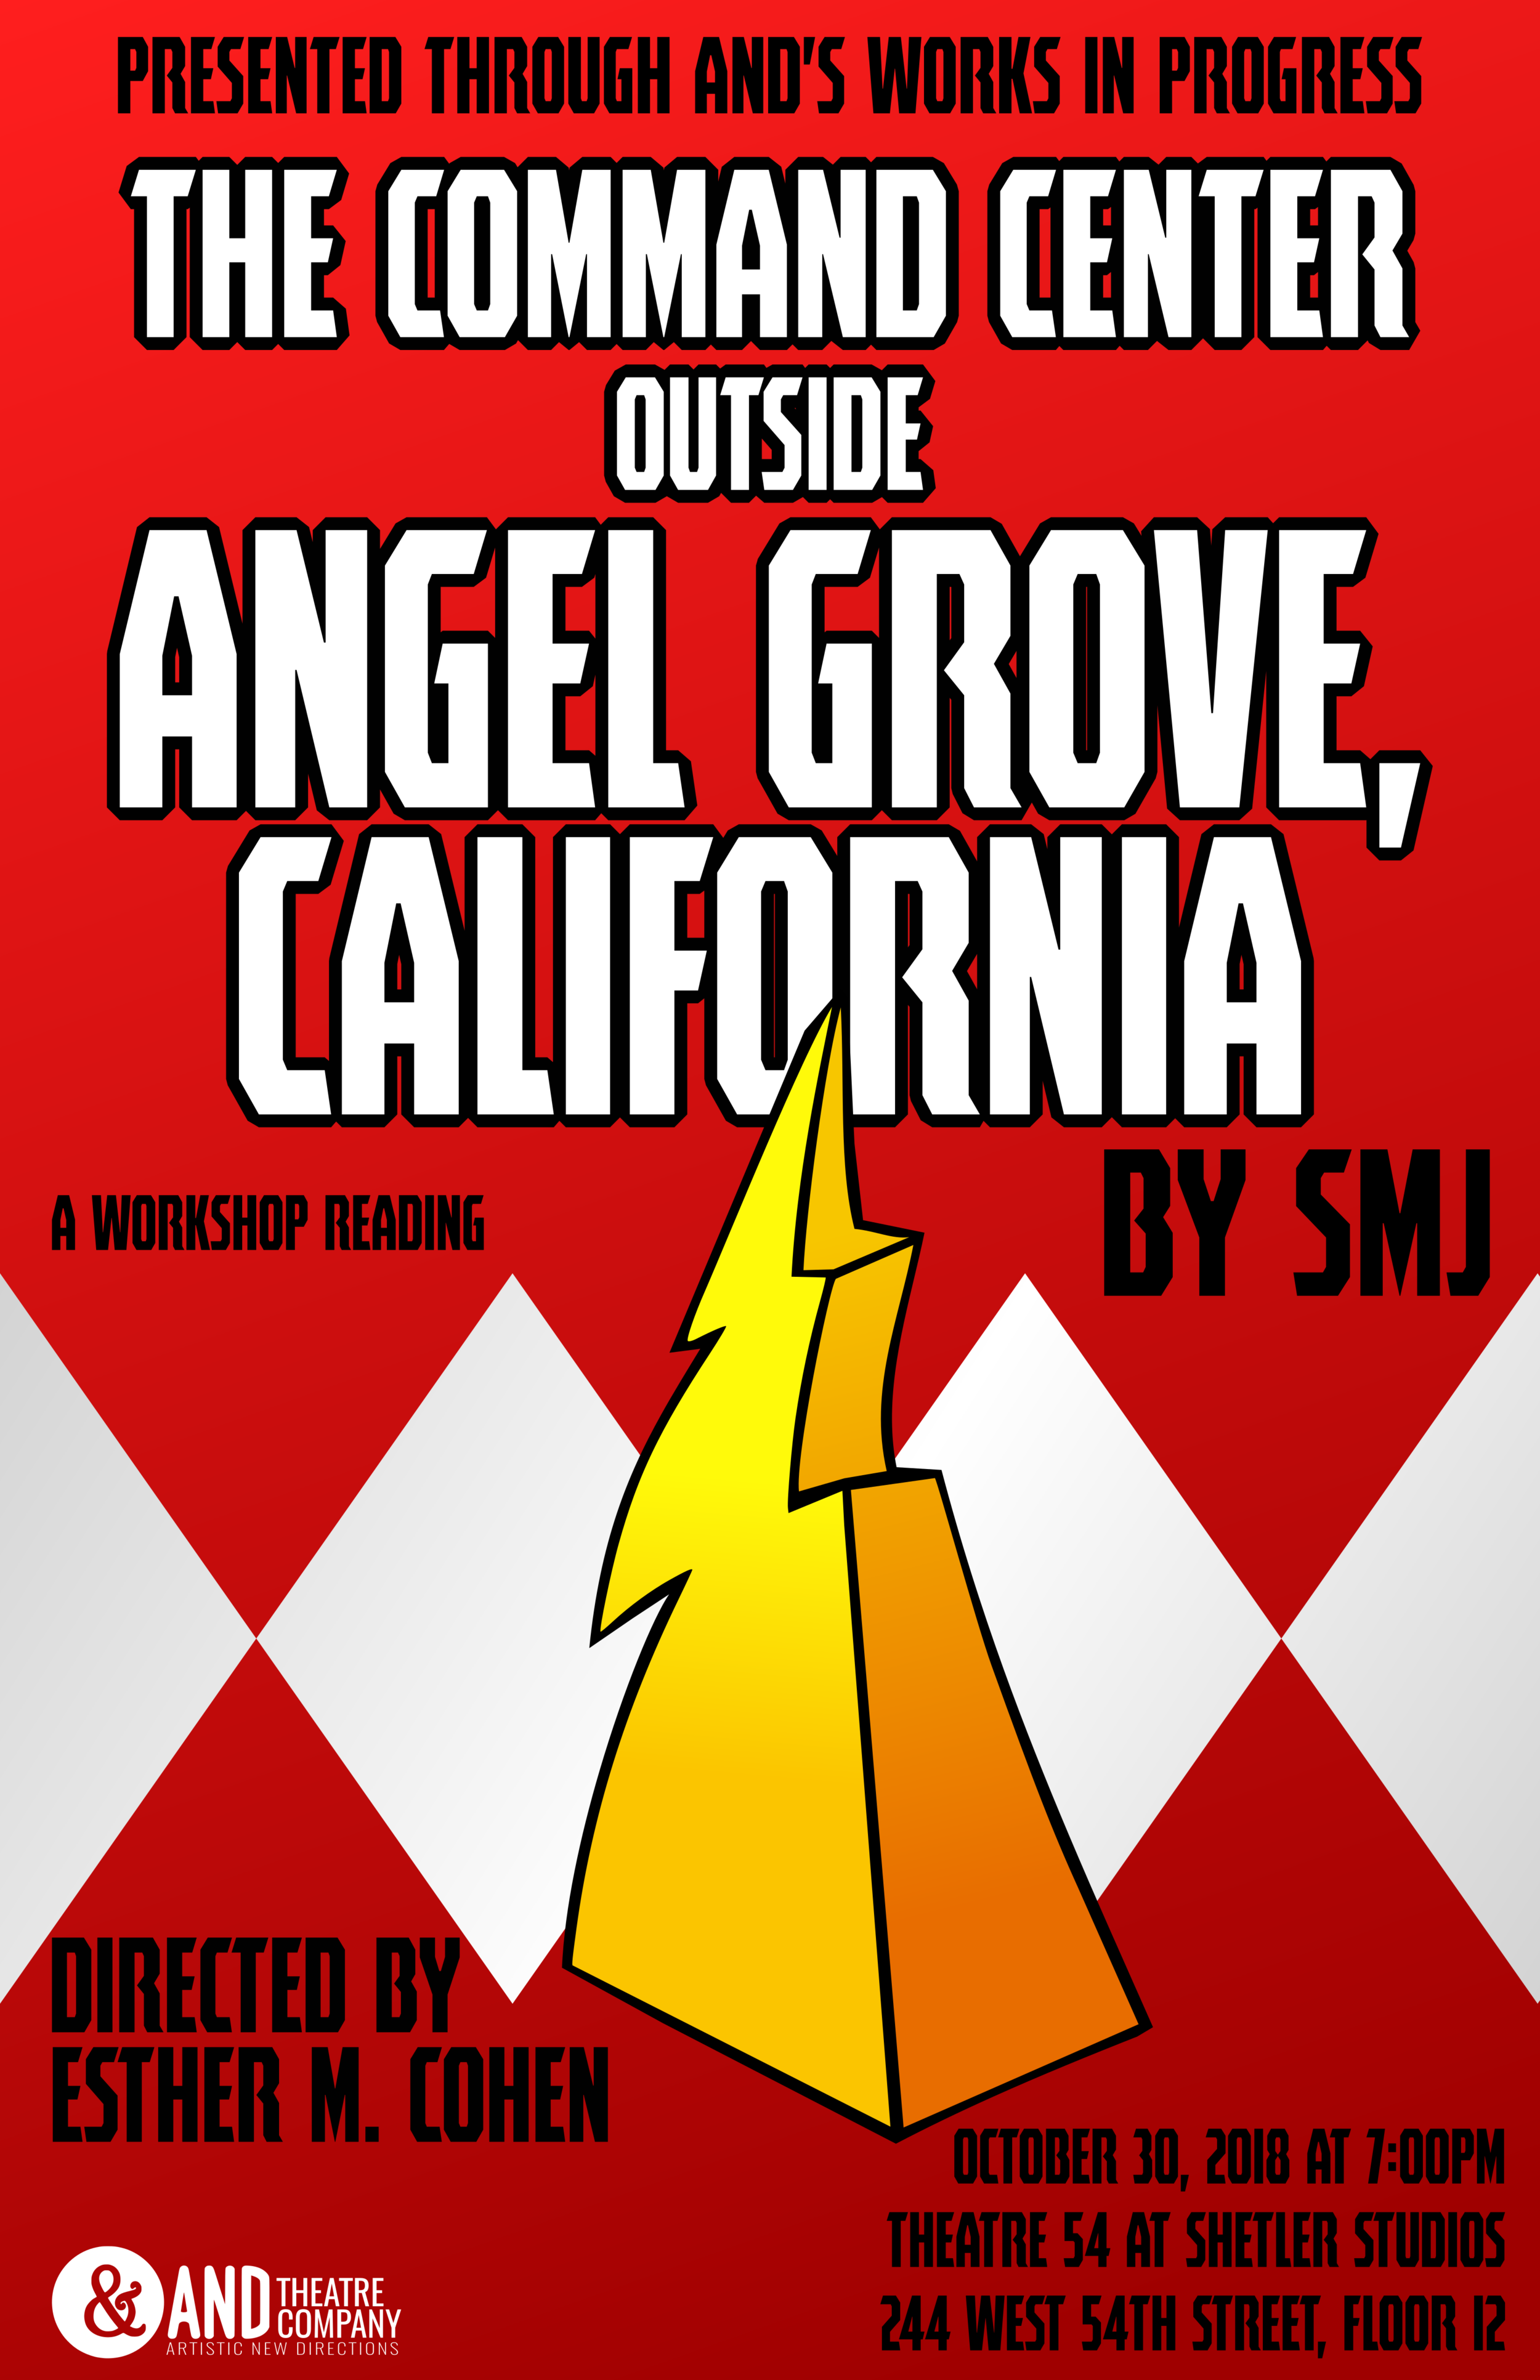 ANDTheatre Company's Works in Progress presents   THE COMMAND CENTER OUTSIDE ANGEL GROVE, CALIFORNIA   October 30th, 2018 @ 7 PM  Theatre 54 at Shetler Studios, 244 W. 54th St., Floor 12  Written by  SMJ   Directed by  Esther M. Cohen   Produced by  Rebecca Schafer and Kevin Thiel   Featuring  EmJ Nelson, Dana Cullinane, Nina Roy, Kate Berg, Ren Dara Santiago, Katie Langham, Alizae Powell,  and  Evan Moore-Coll